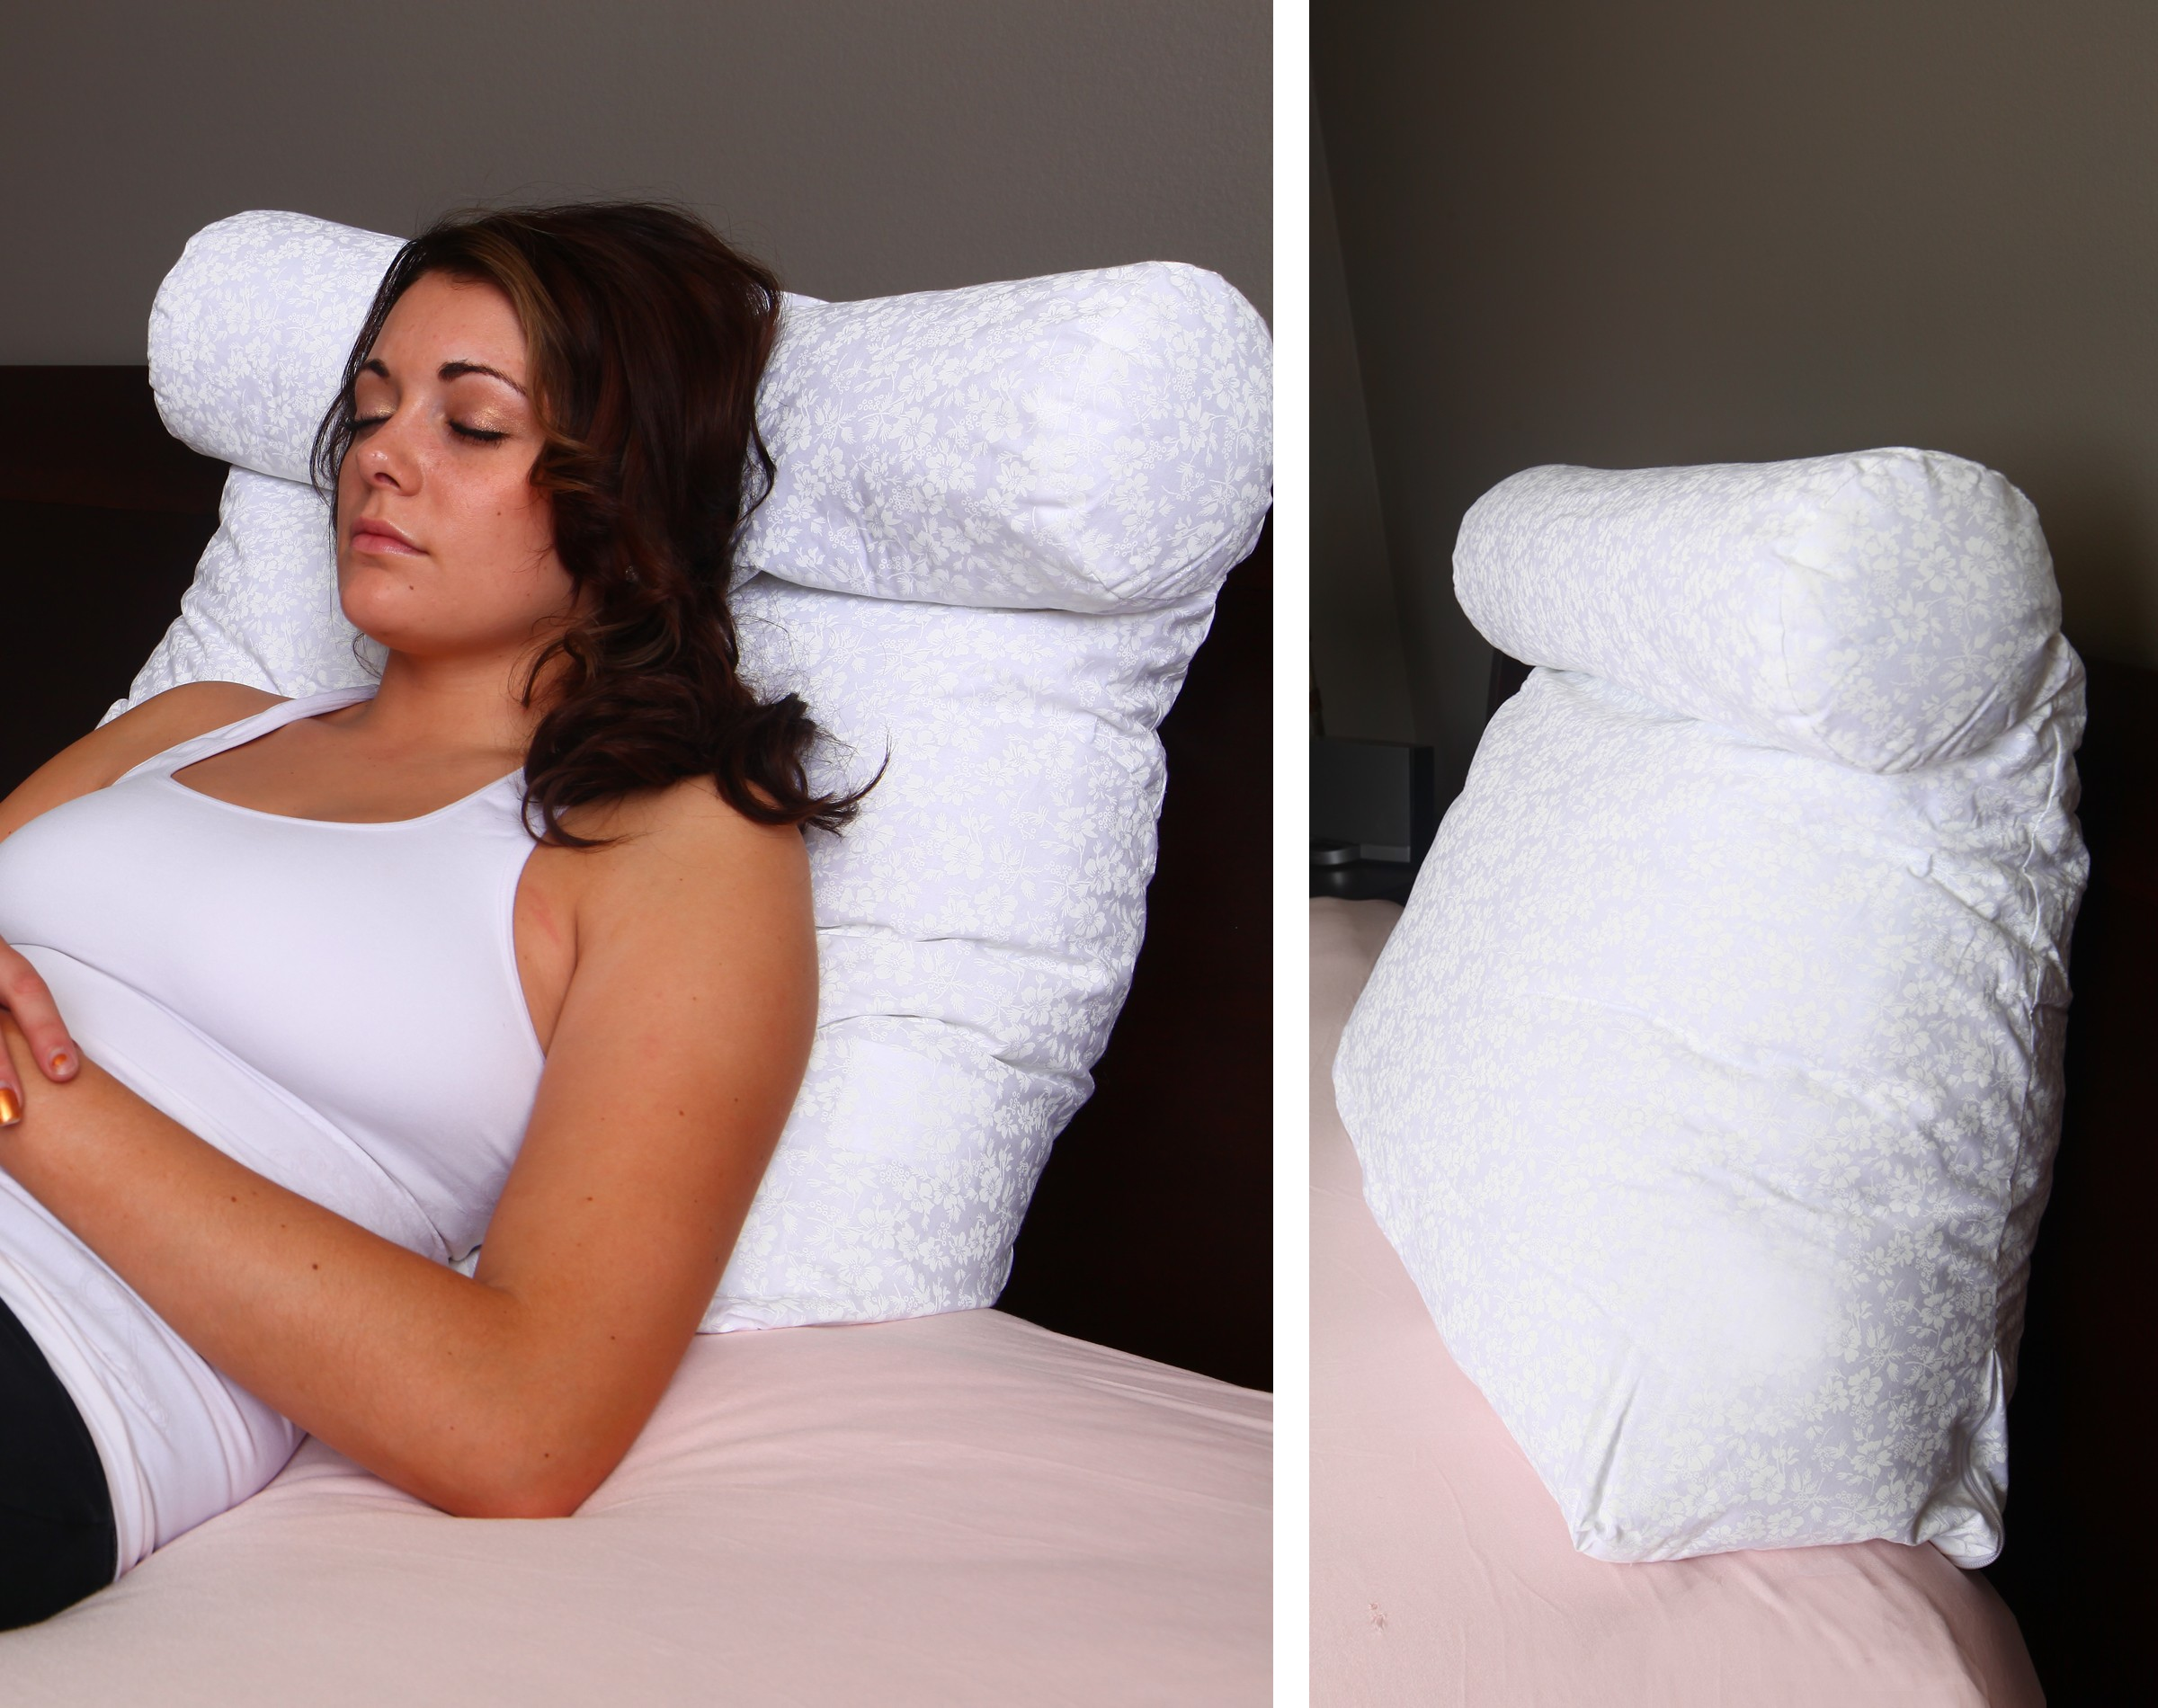 deluxe comfort relax in bed pillow therapeutic back pillow poly fiber foam with built in neck roll reading and bed rest lounger bed pillow